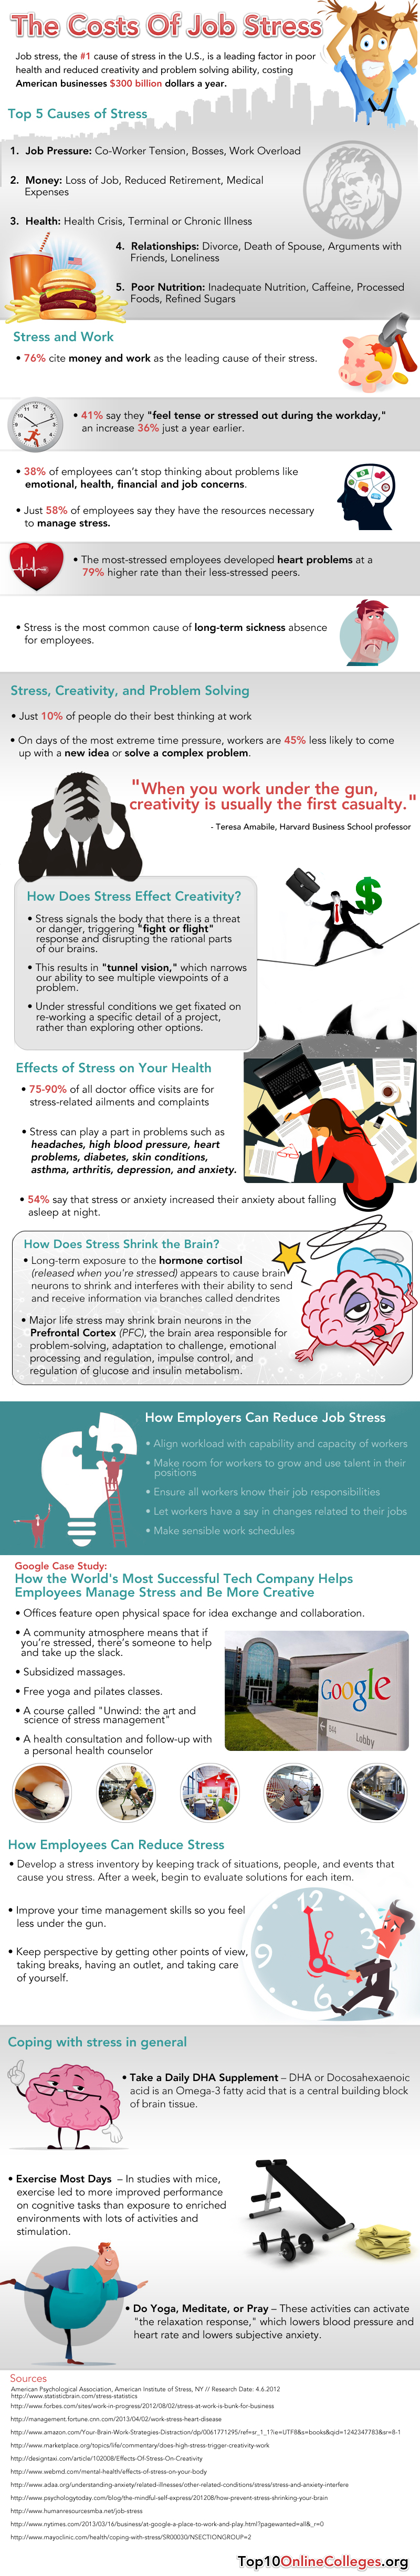 How job stress is affecting America